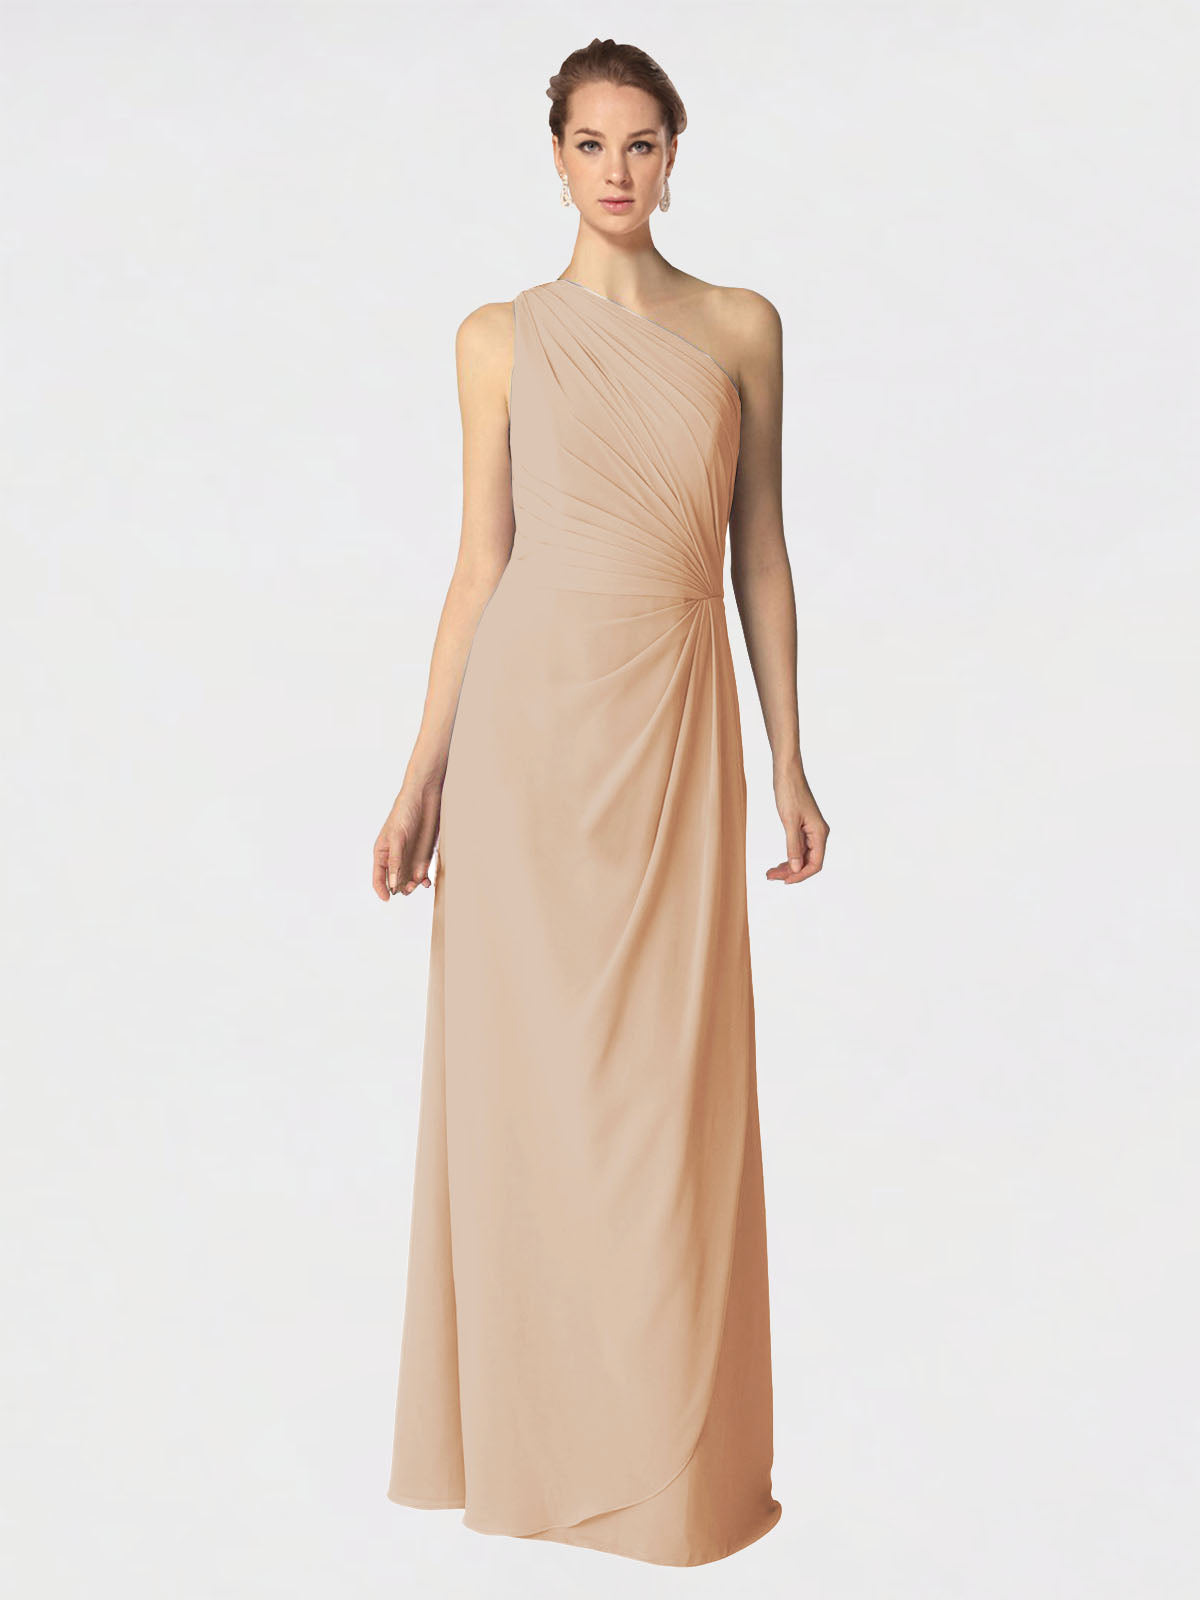 Long A-Line One Shoulder Sleeveless Champagne Chiffon Bridesmaid Dress Aurora